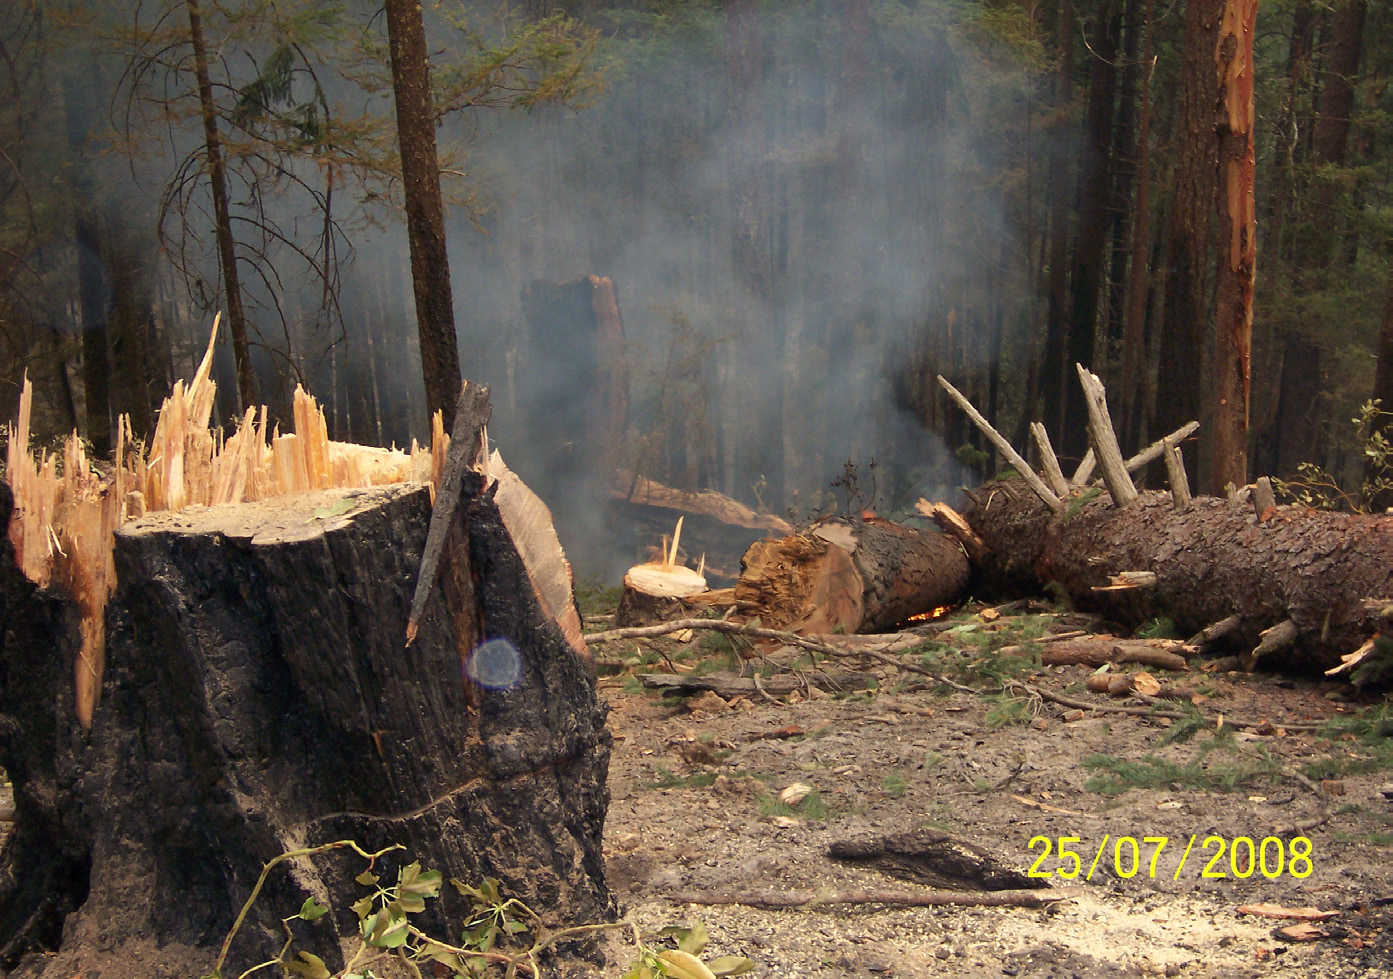 Colorado Firecamp, Dutch Creek Incident Investigation Report